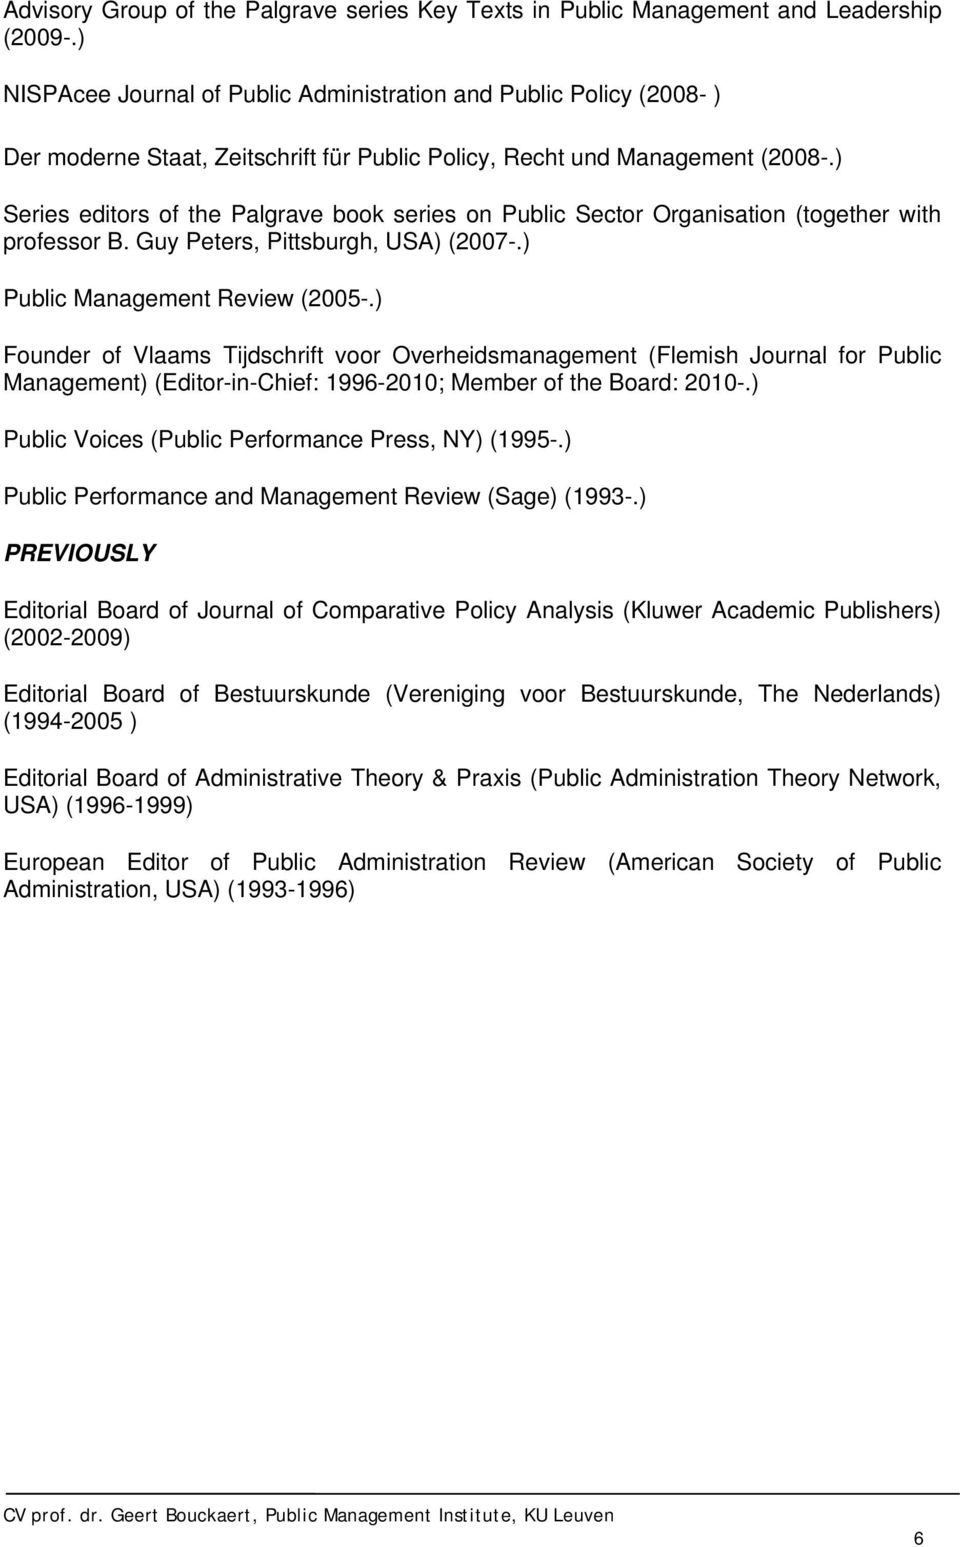 ) Series editors of the Palgrave book series on Public Sector Organisation (together with professor B. Guy Peters, Pittsburgh, USA) (2007-.) Public Management Review (2005-.